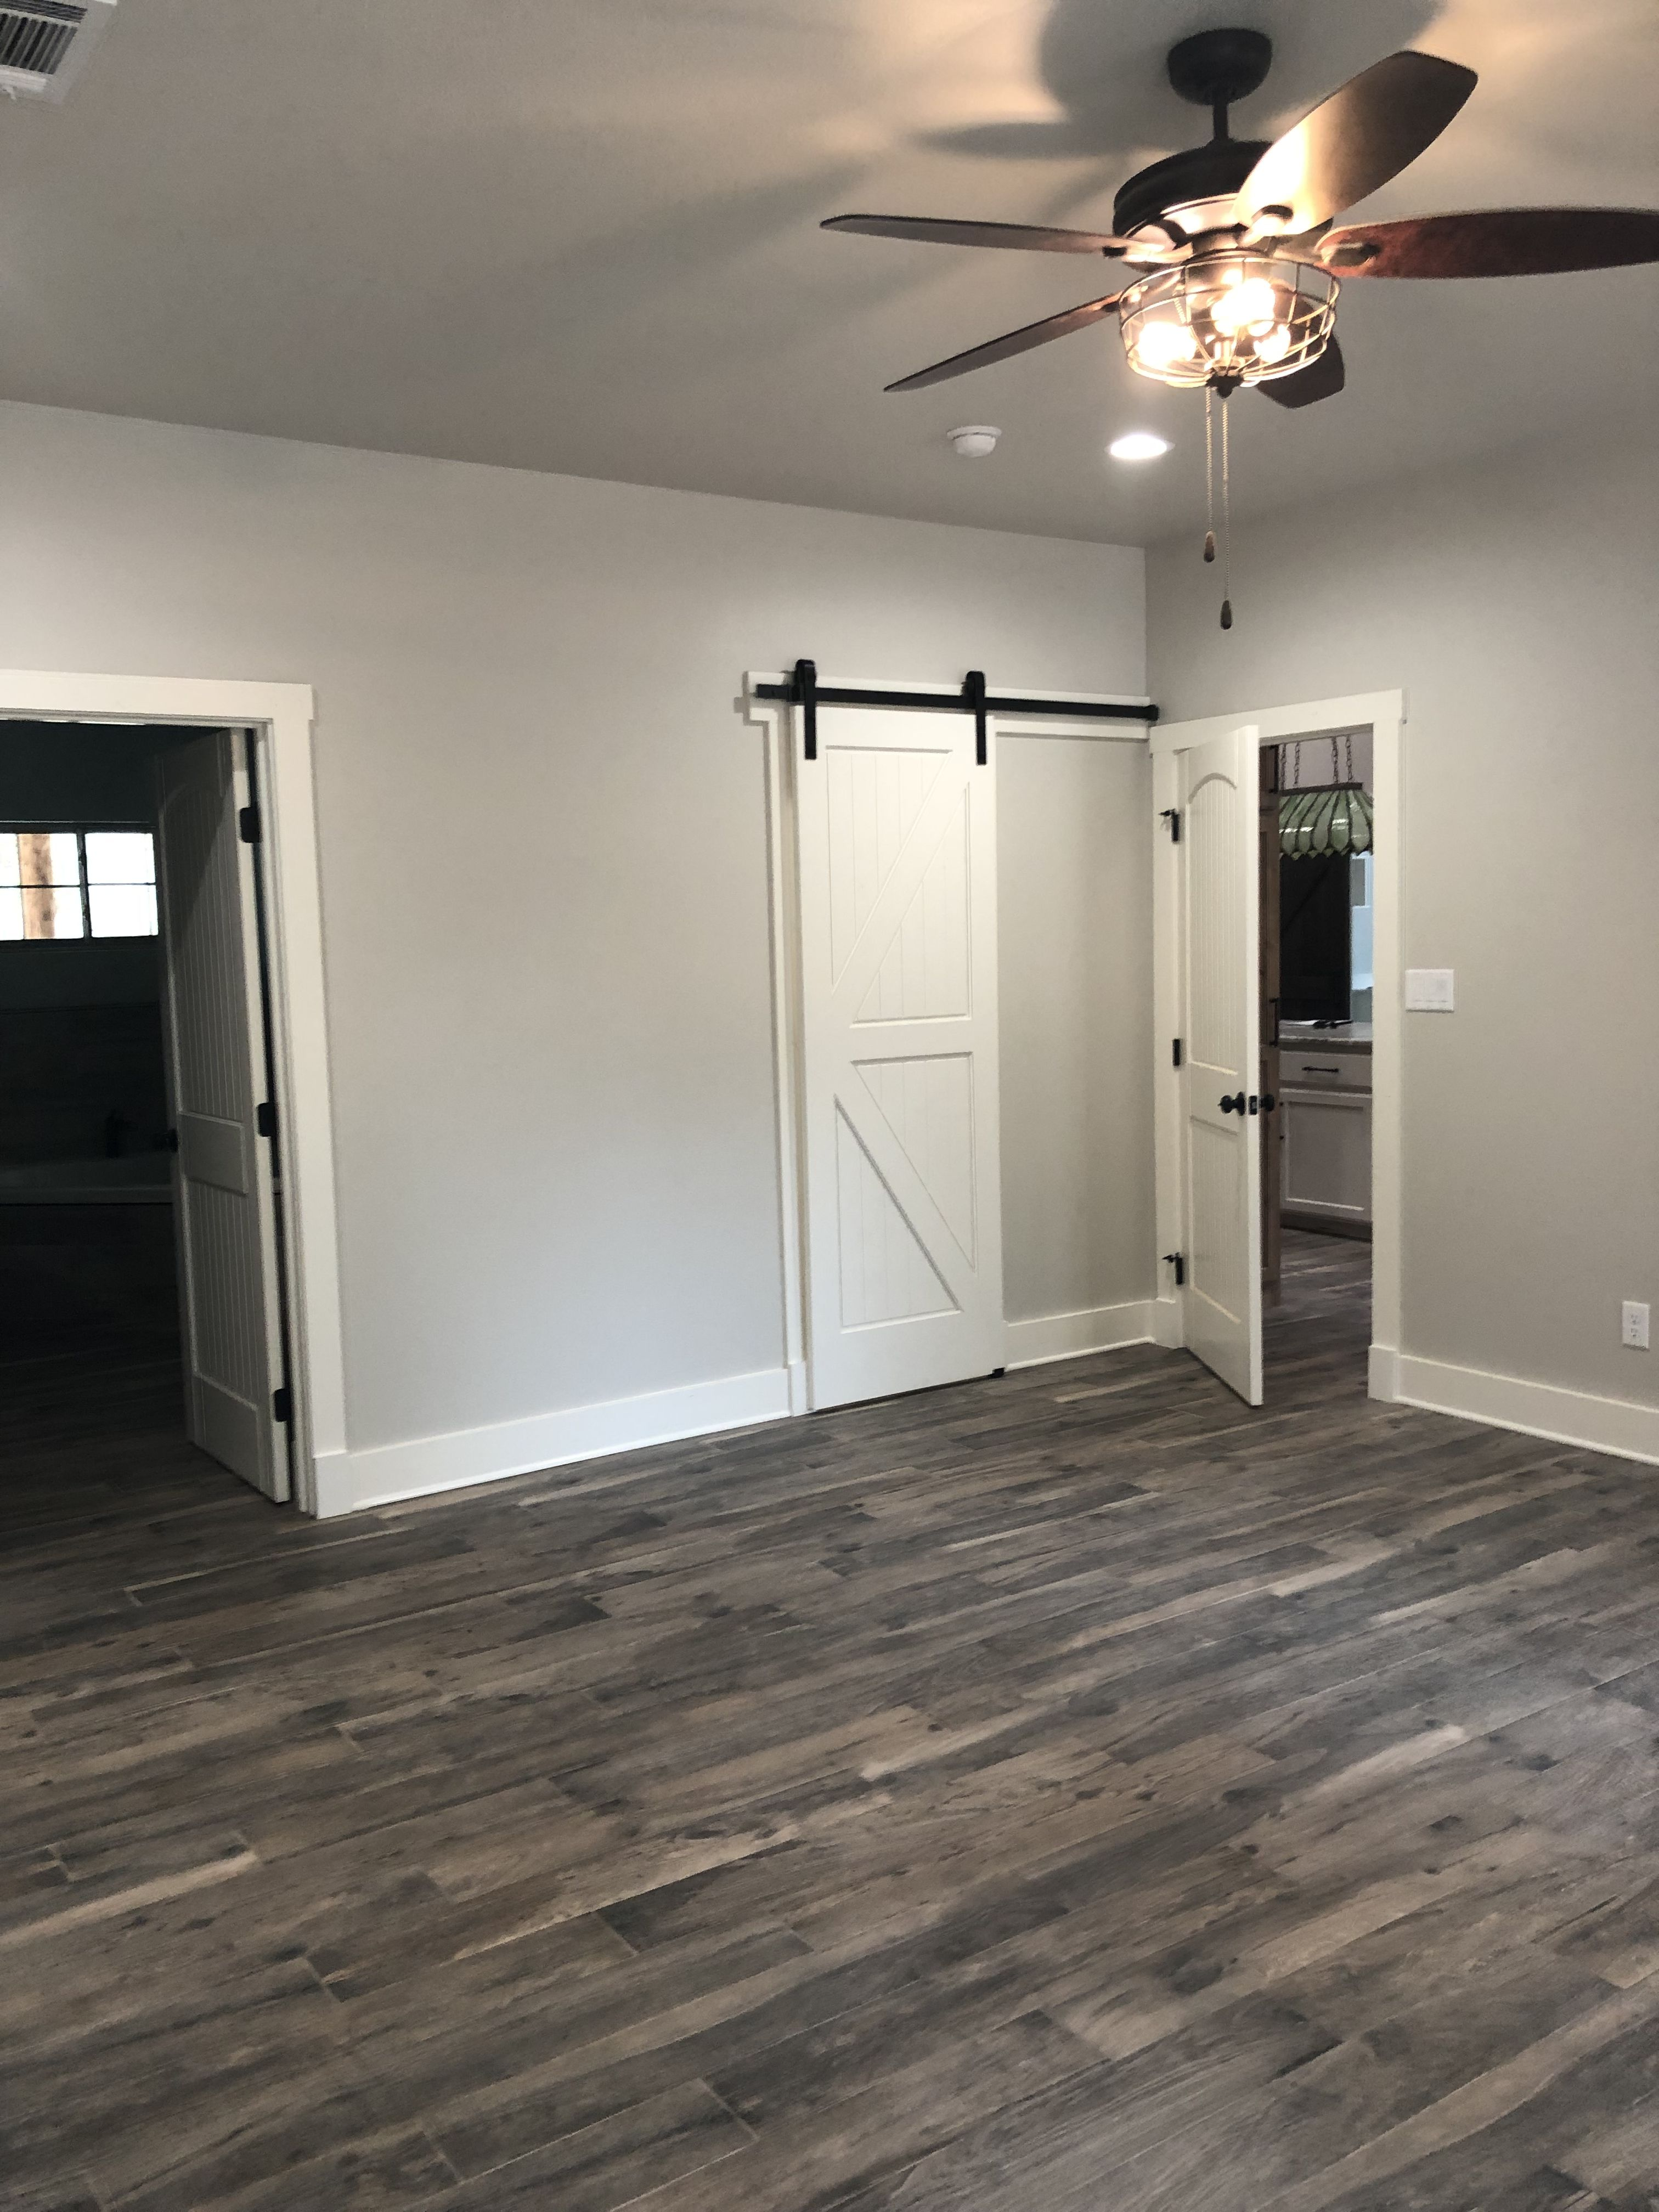 Agreeable Gray With Alabaster Trim Barn Door And Wood Porcelain